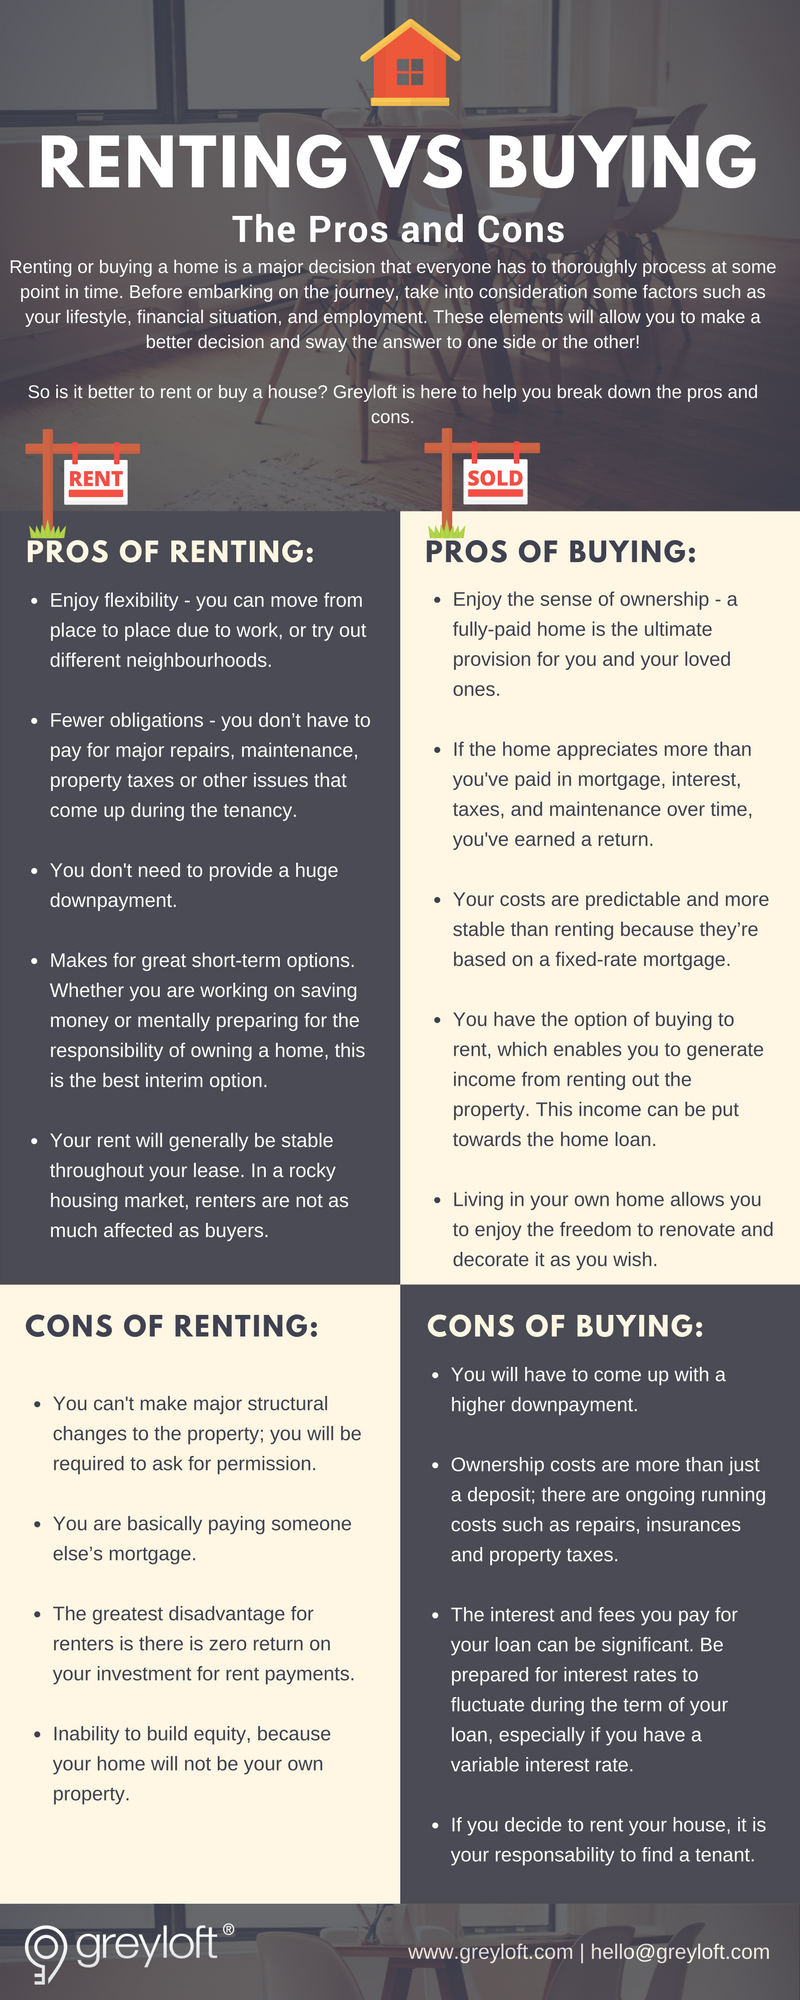 Singapore Property Renting Vs Buying The Pros And Cons Infographic Rent Vs Buy Real Estate Rent Real Estate Fun